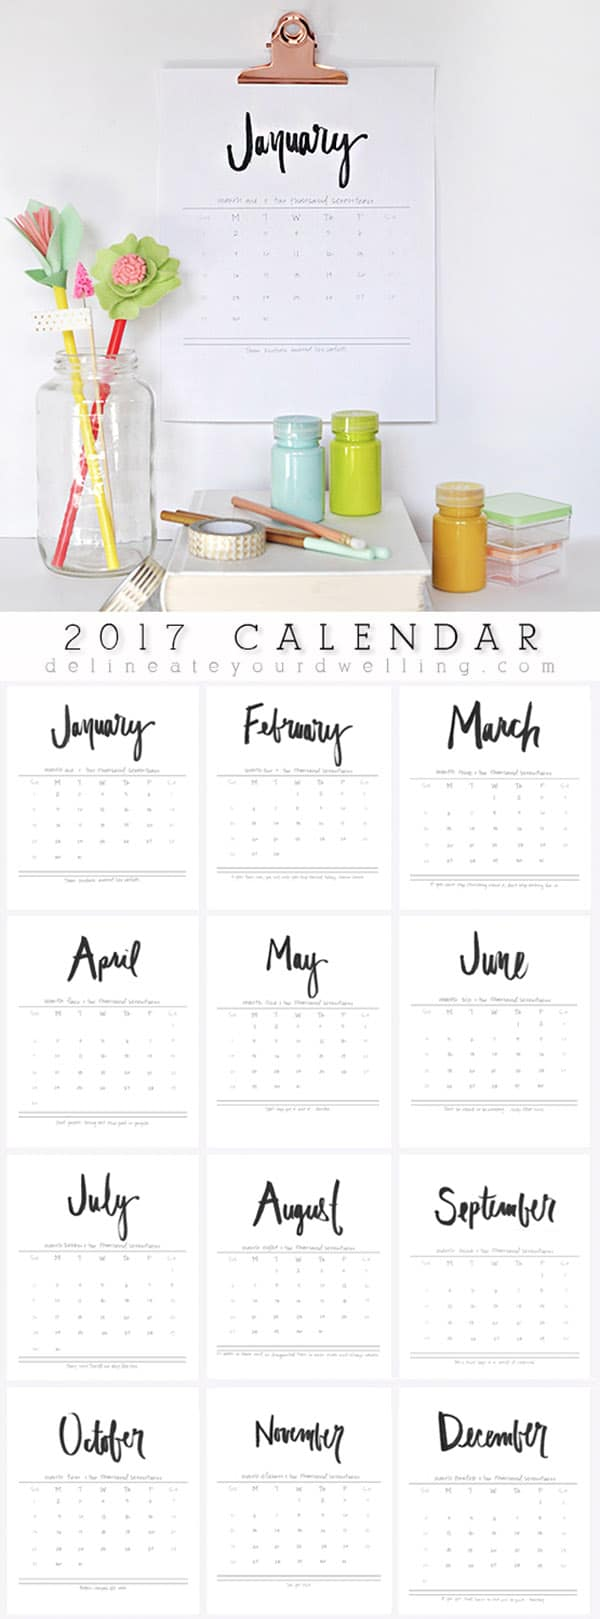 2017 Hand lettered Calendar - Delineate Your Dwelling